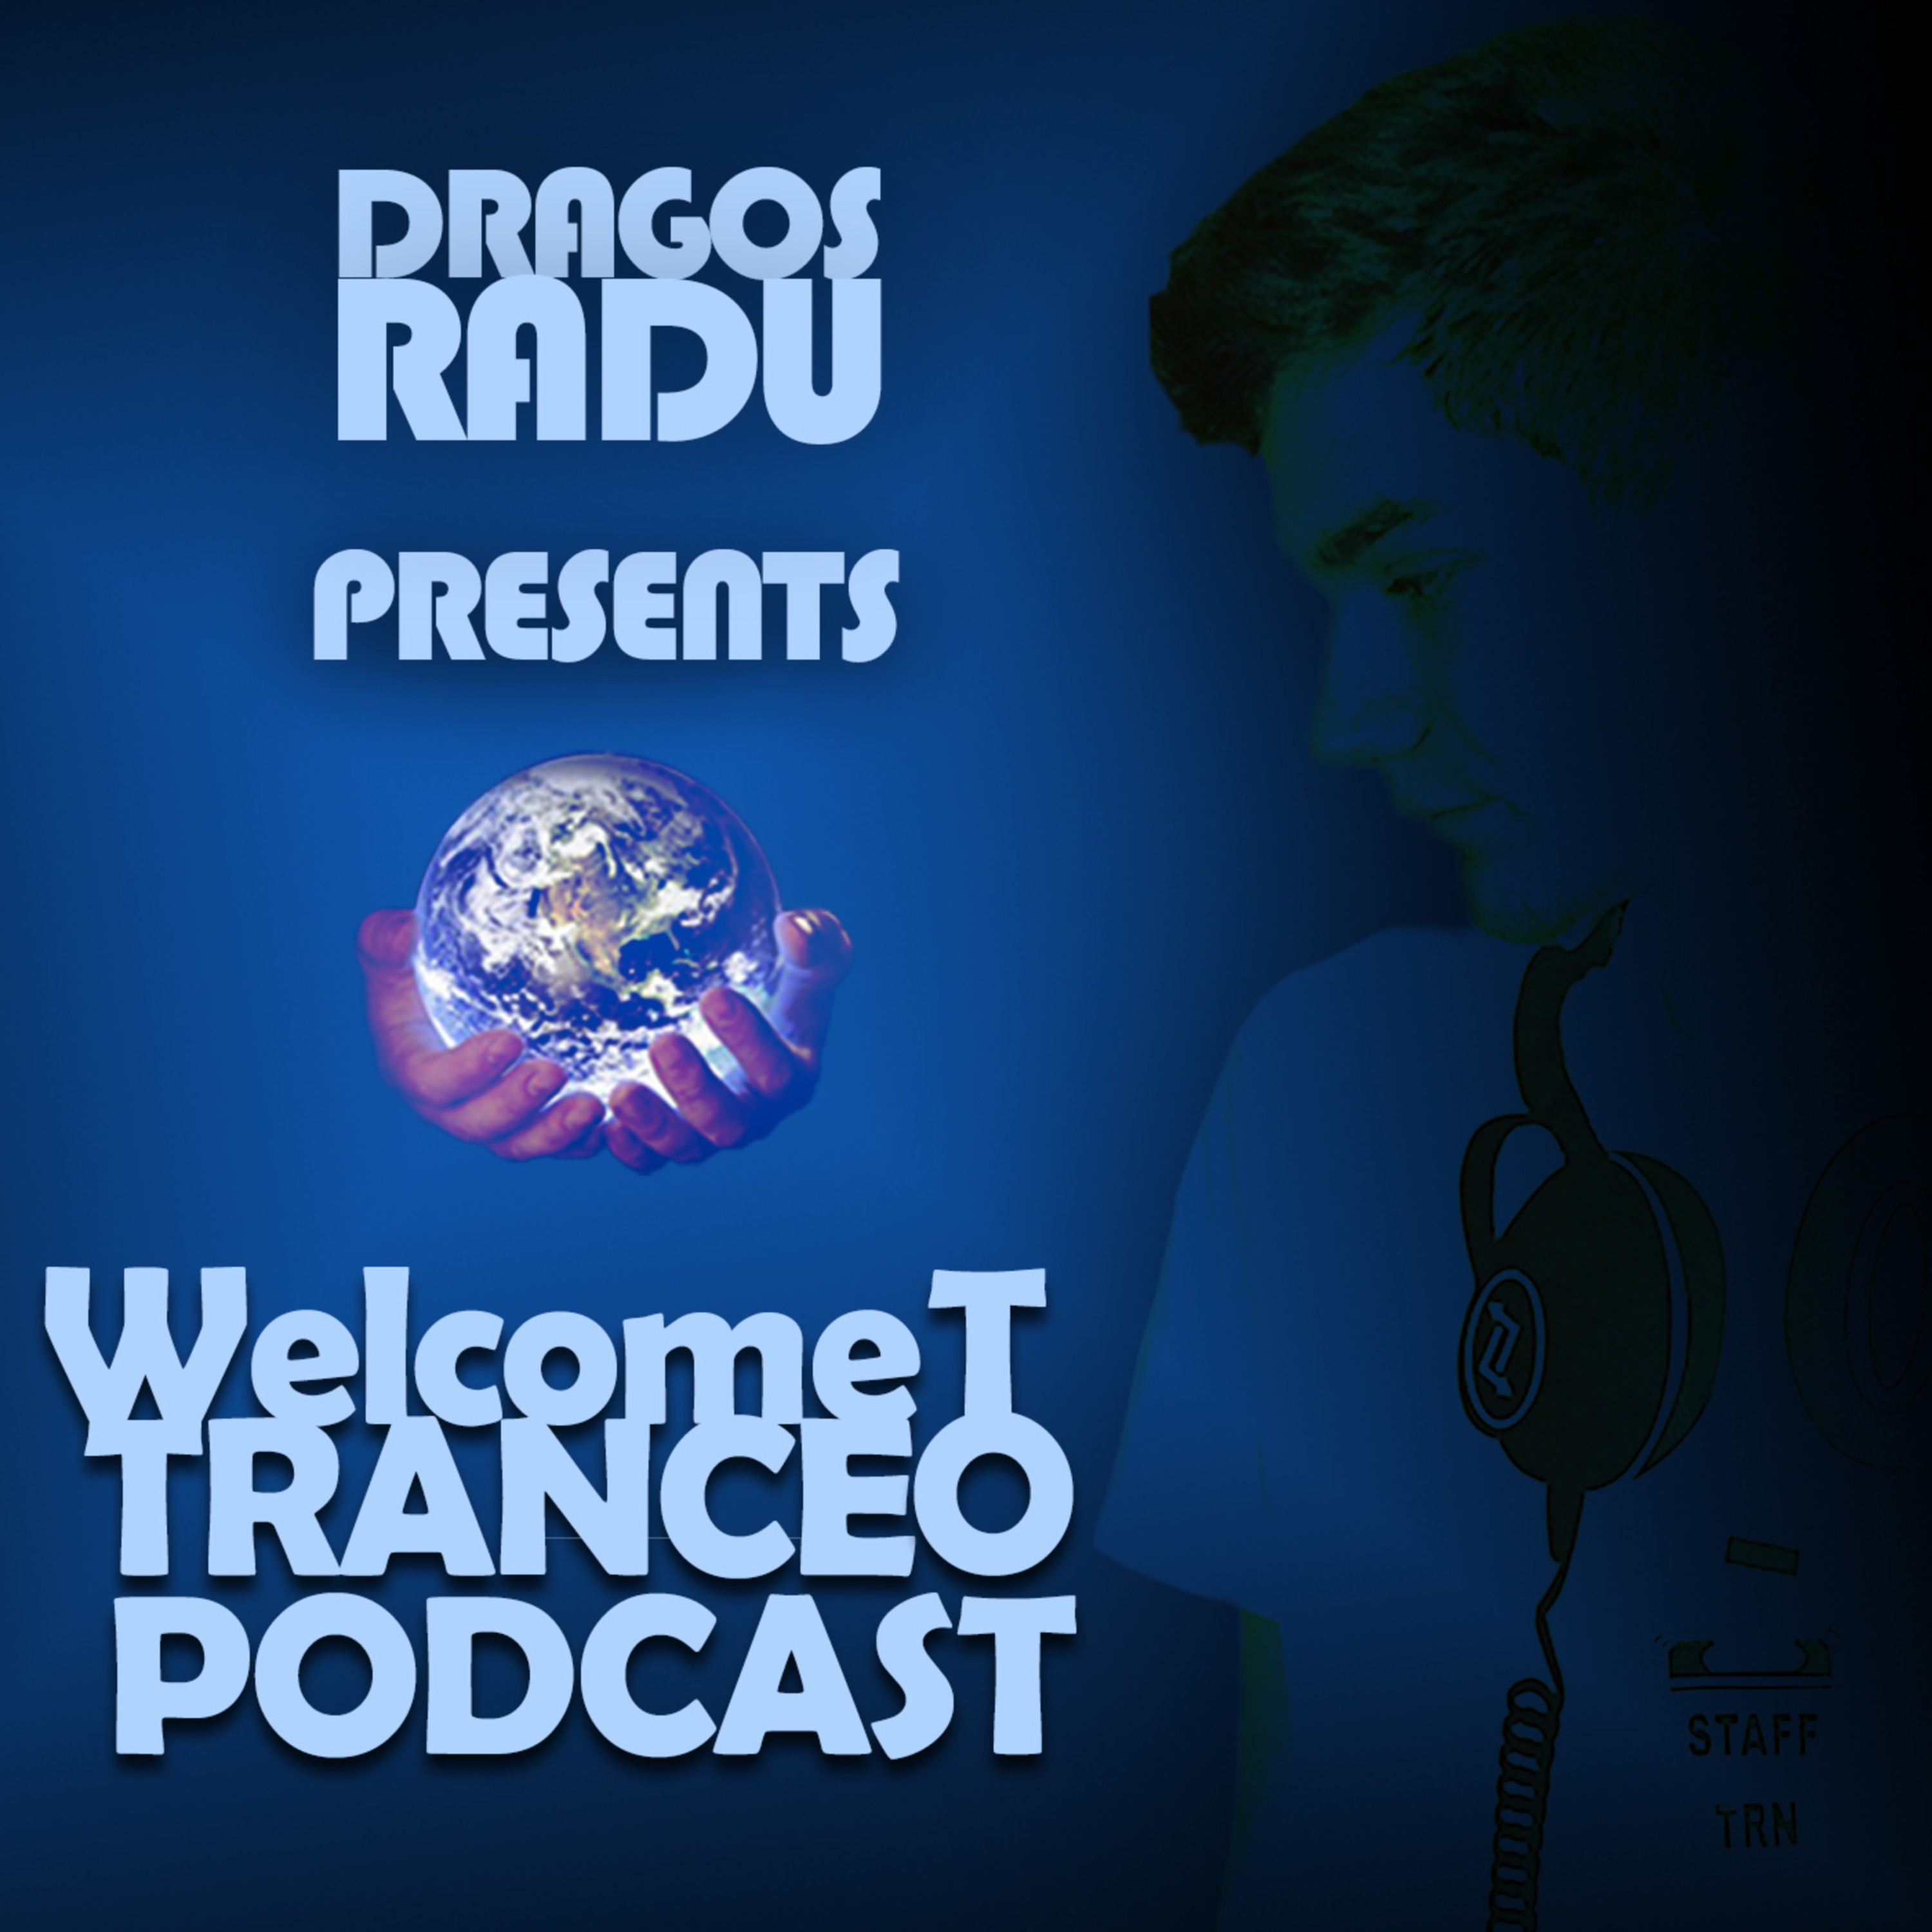 Welcome to TRANCE Podcast